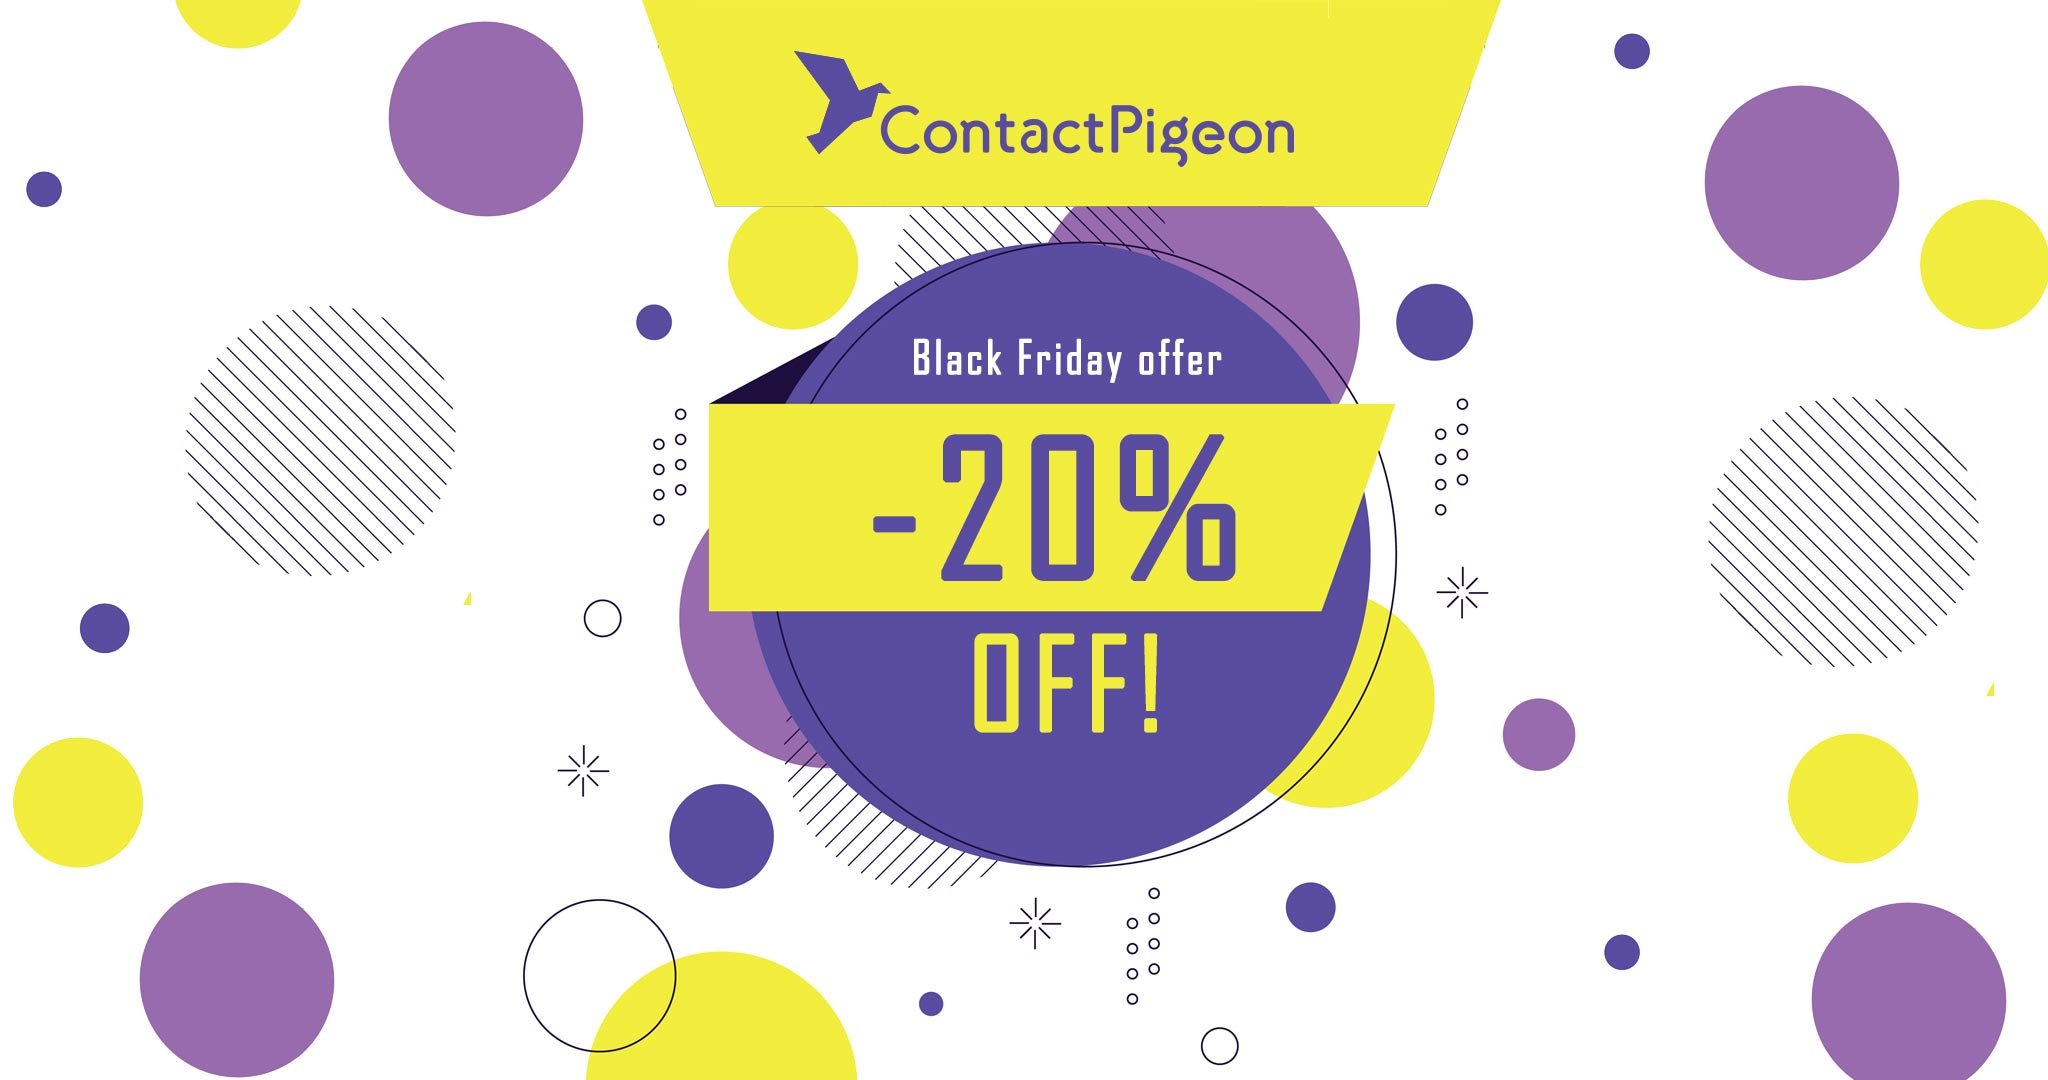 ContactPigeon Black Friday 2020